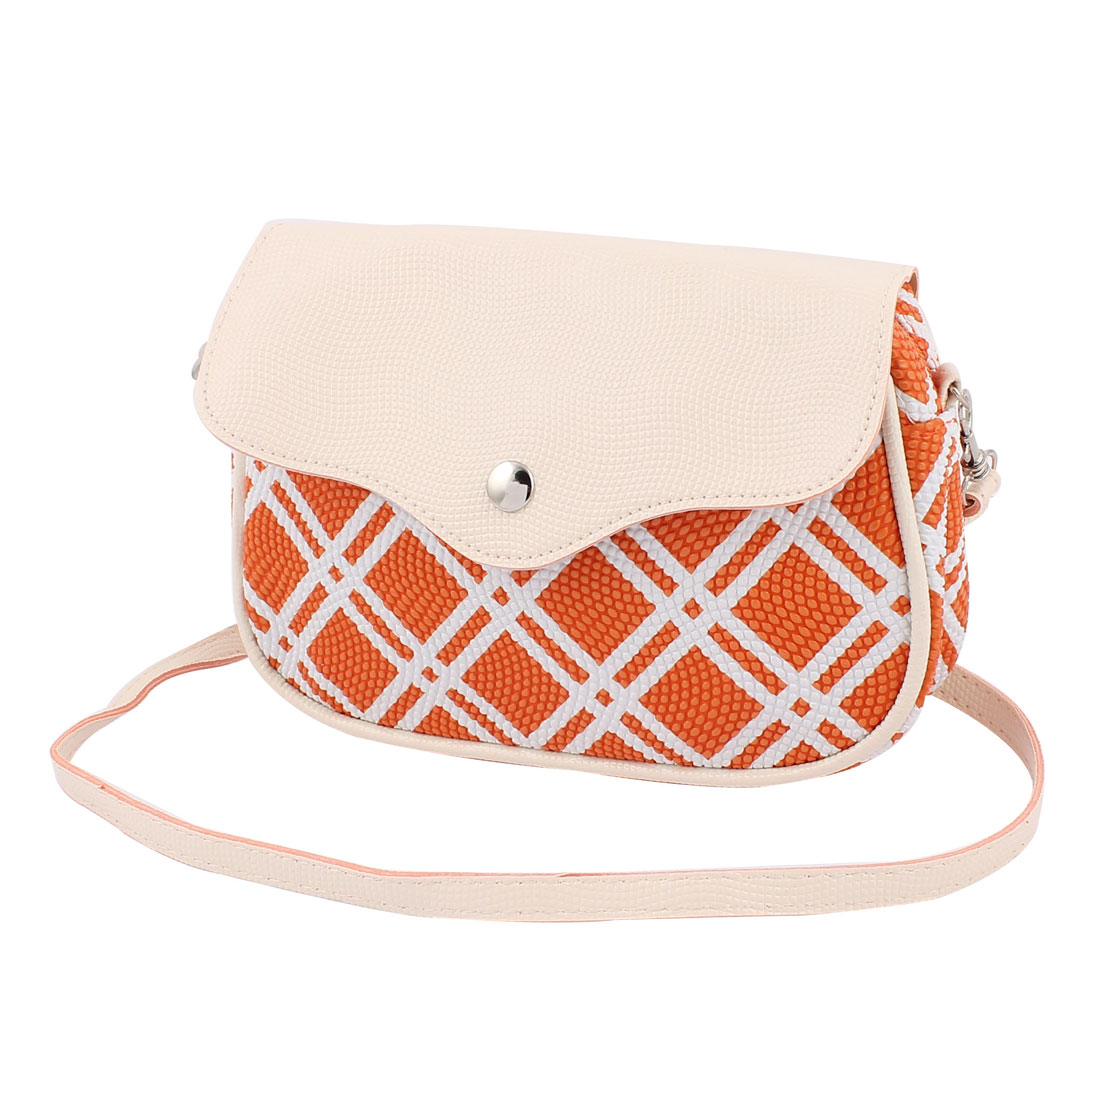 Women Ladies Faux Leather Bag Purse Cross Body Shoulder Handbag Orange Beige